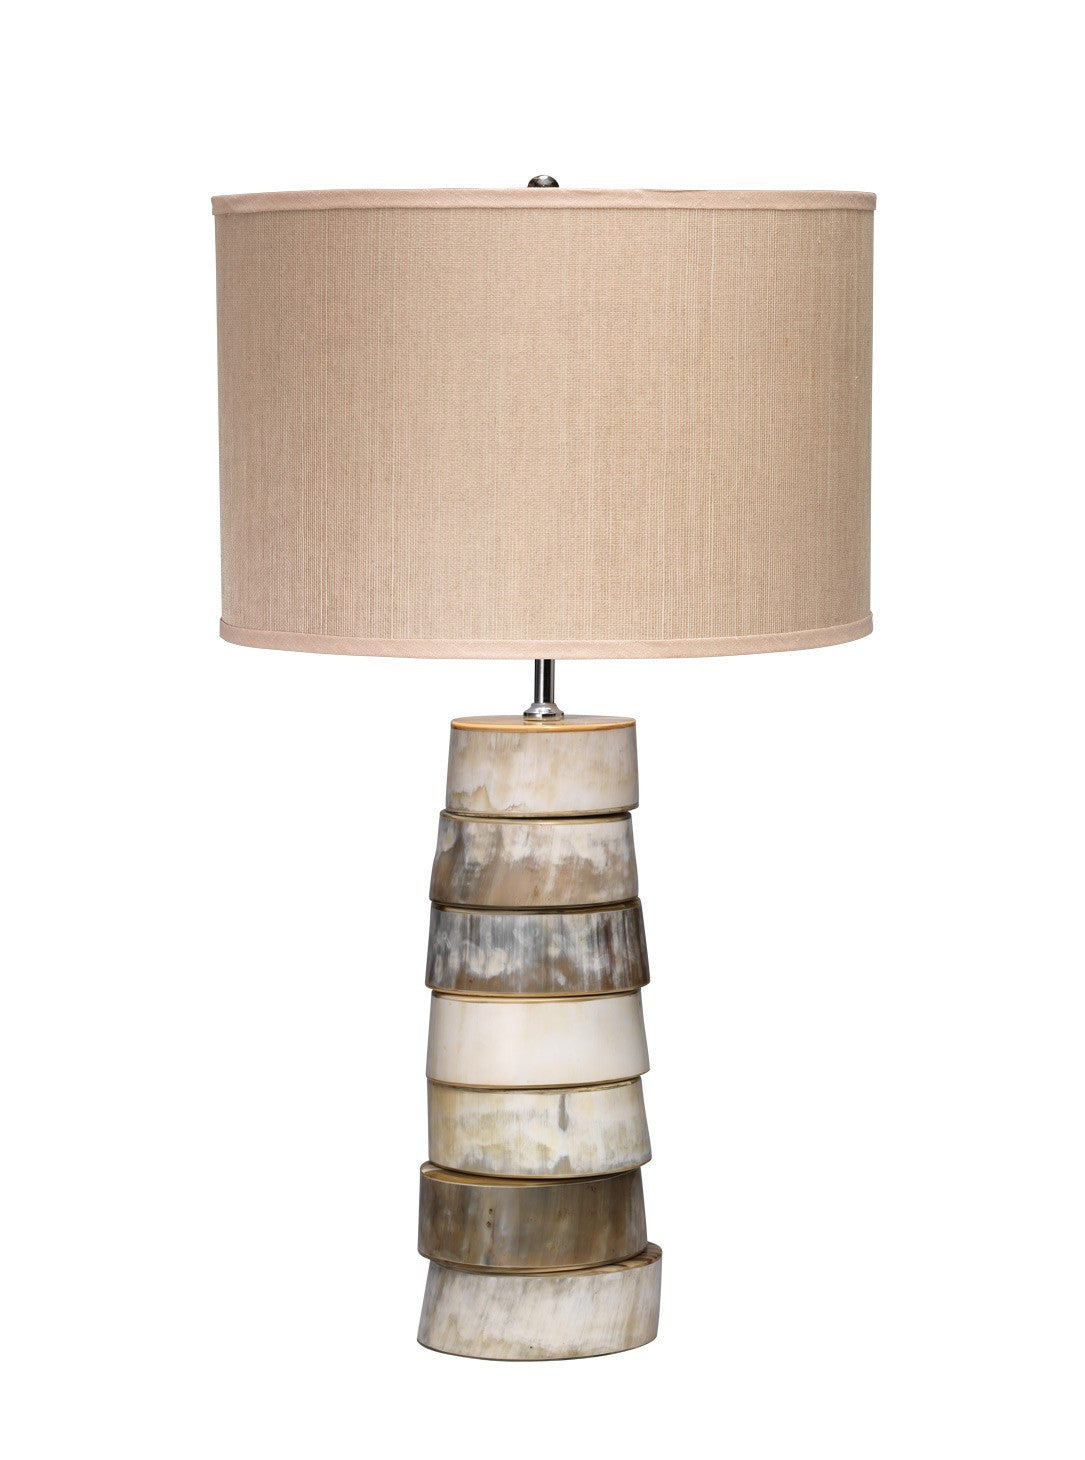 High Quality Jamie Young Stacked Horn Table Lamp 1310 Gallery